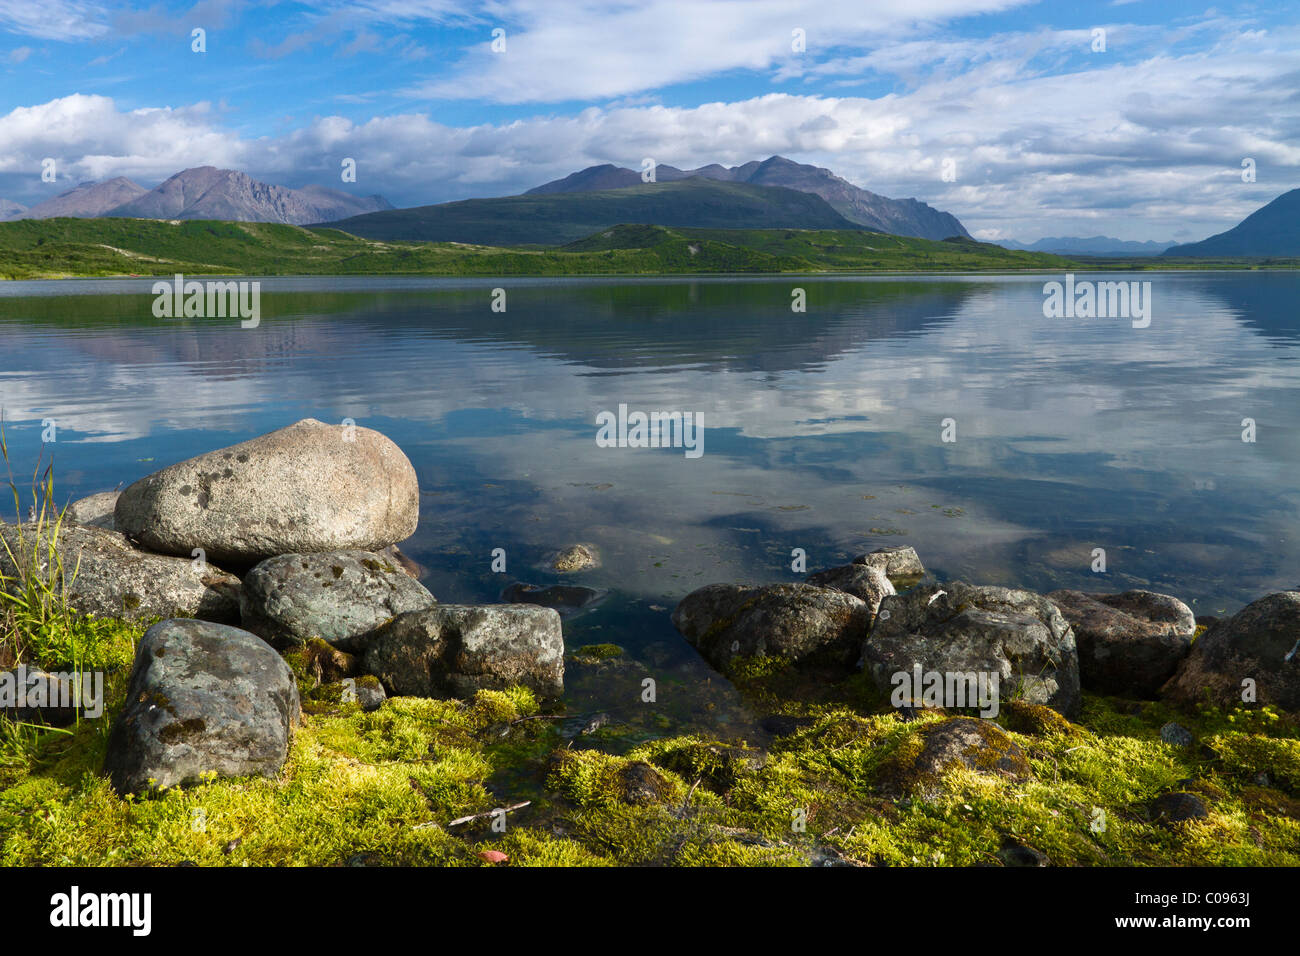 View of Tangle Lake near Paxson with rocks and green moss in the foreground, Interior Alaska, Summer - Stock Image